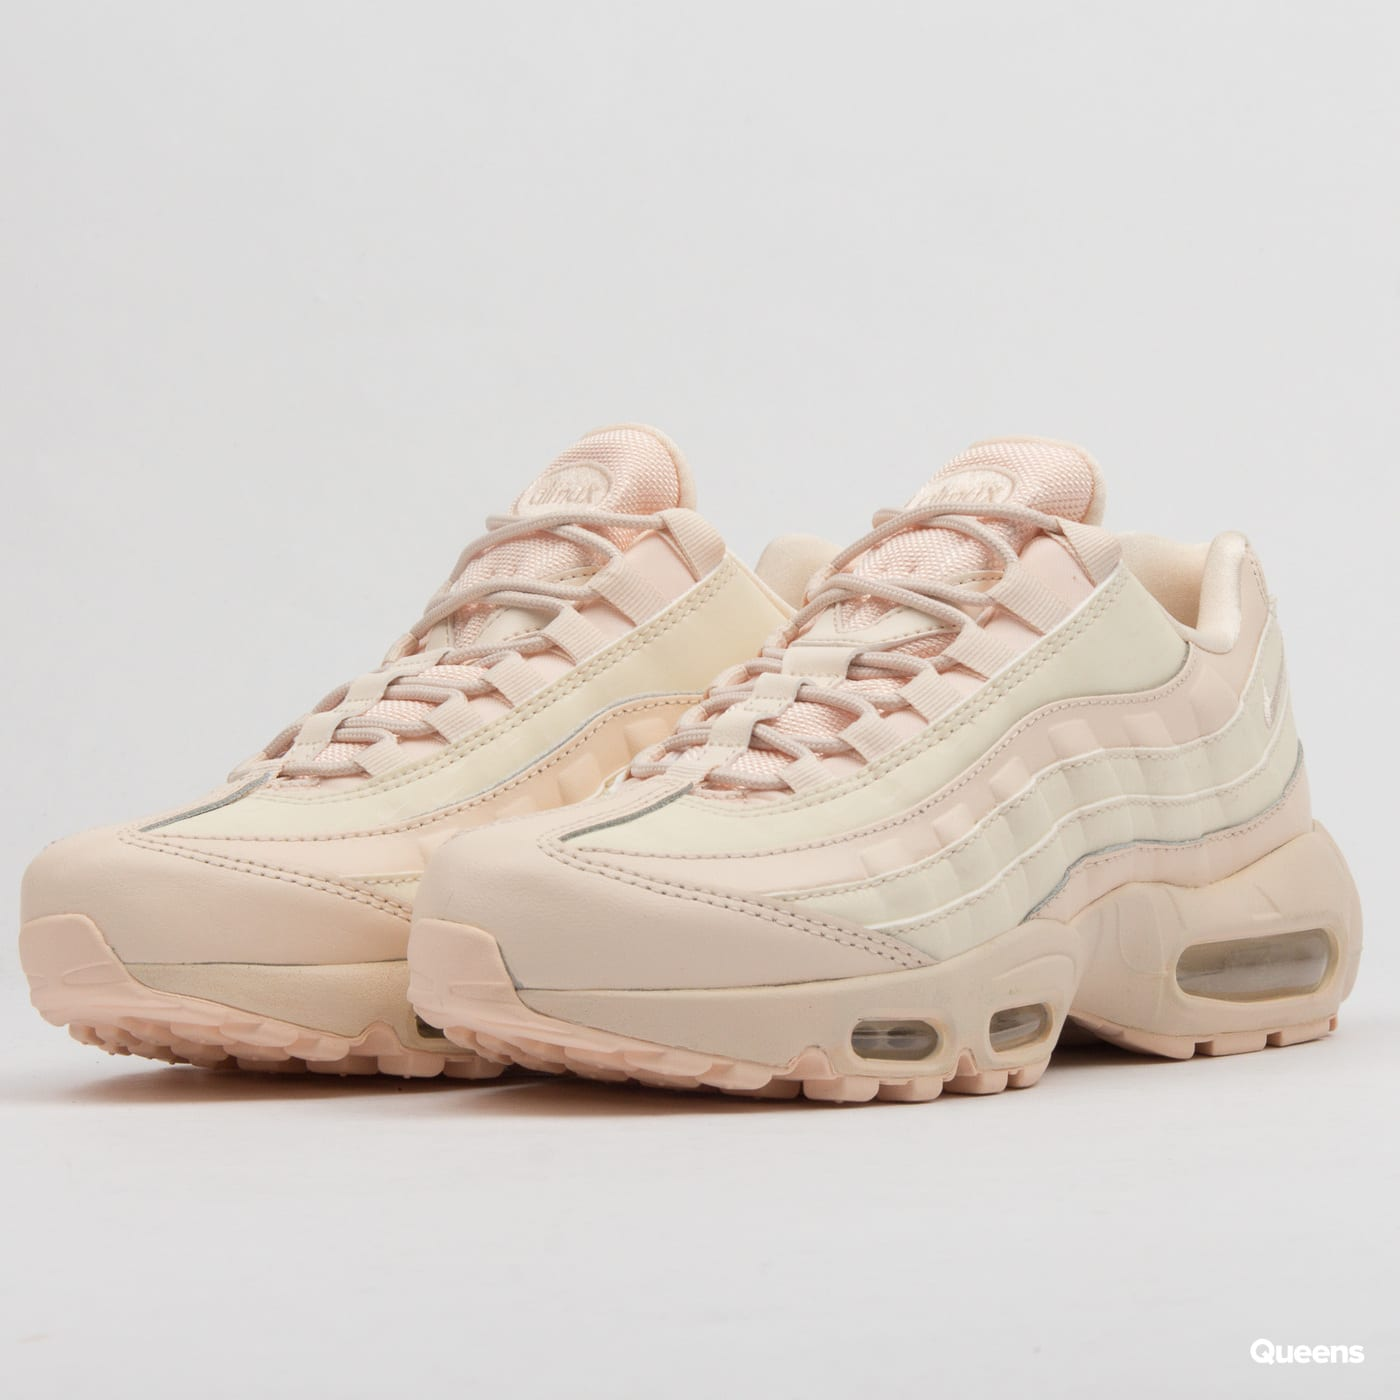 40f4a3db25 Nike WMNS Air Max 95 LX guava ice / guava ice - guava ice (AA1103-800) –  Queens 💚